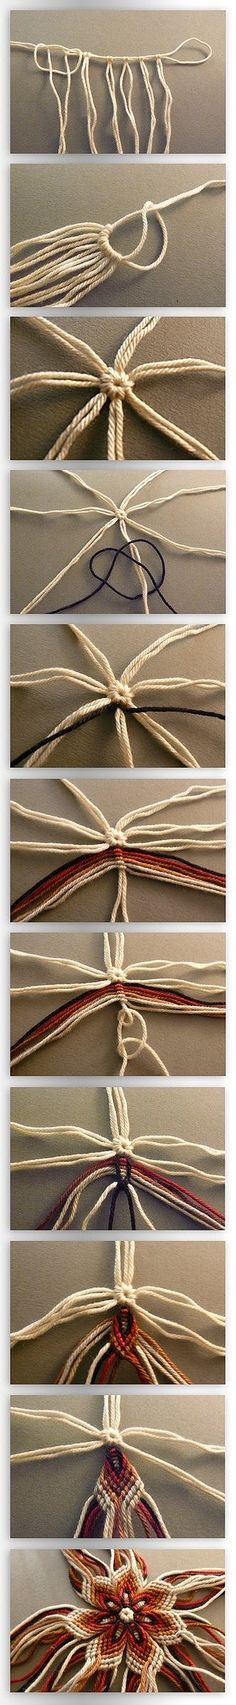 i really wanna do this! it's the friendship bracelets x7 = a flower! beautiful :]